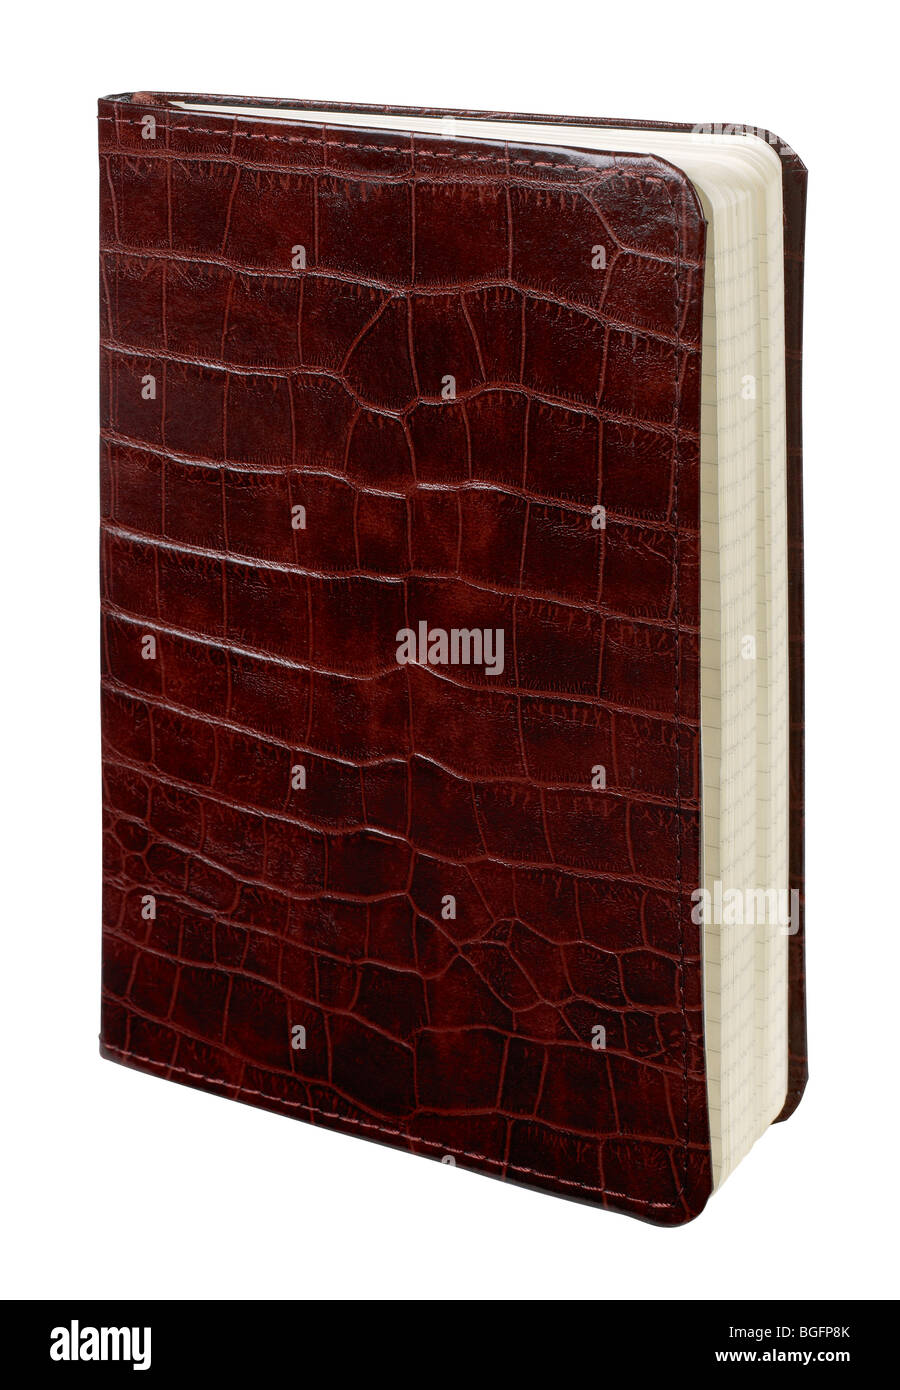 brown leather bound crocodile textured book journal diary ledger - Stock Image